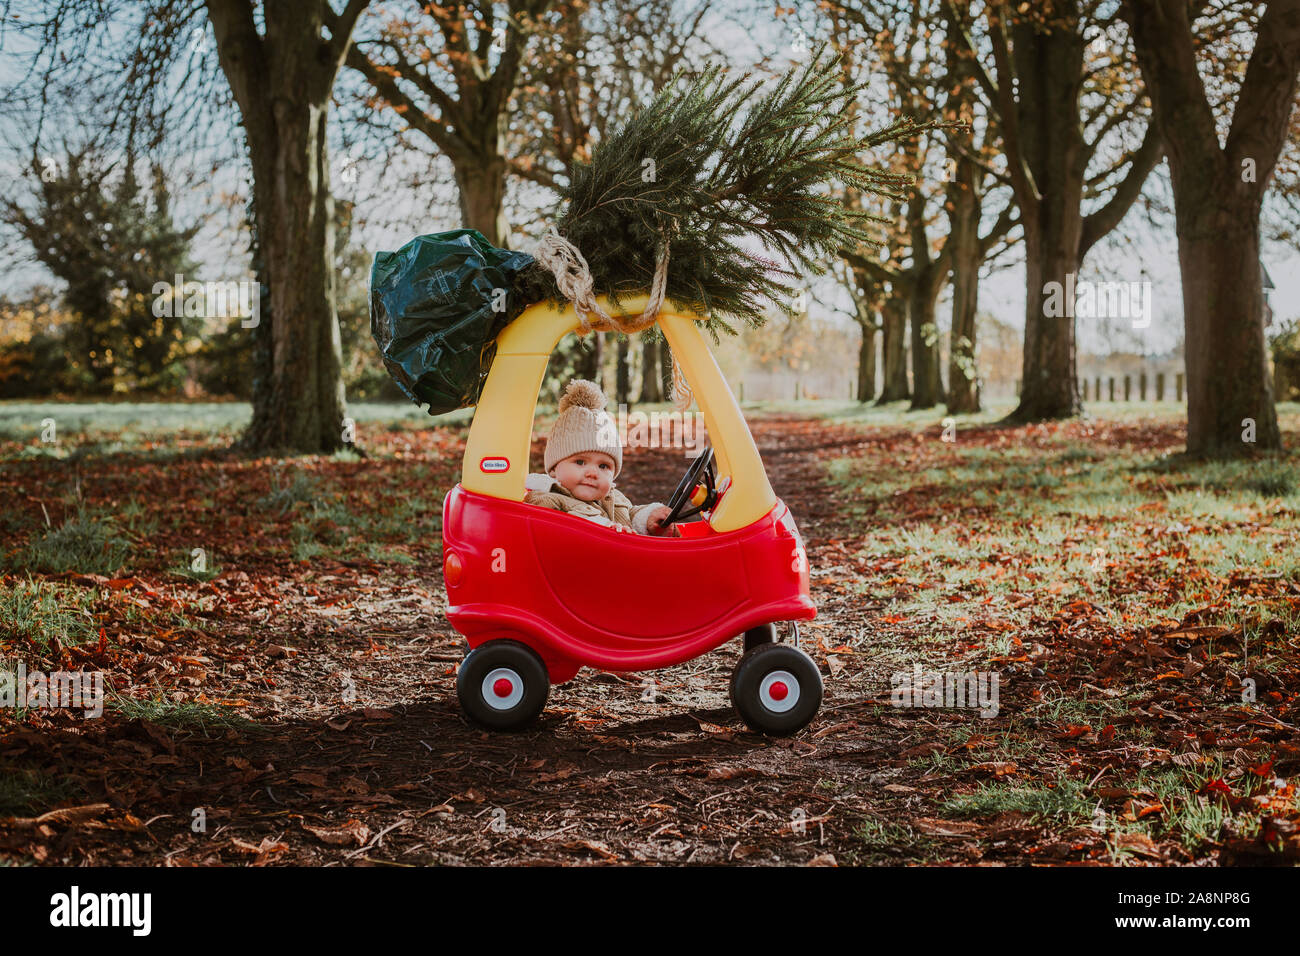 Little Tikes Cozy Coupe High Resolution Stock Photography And Images Alamy